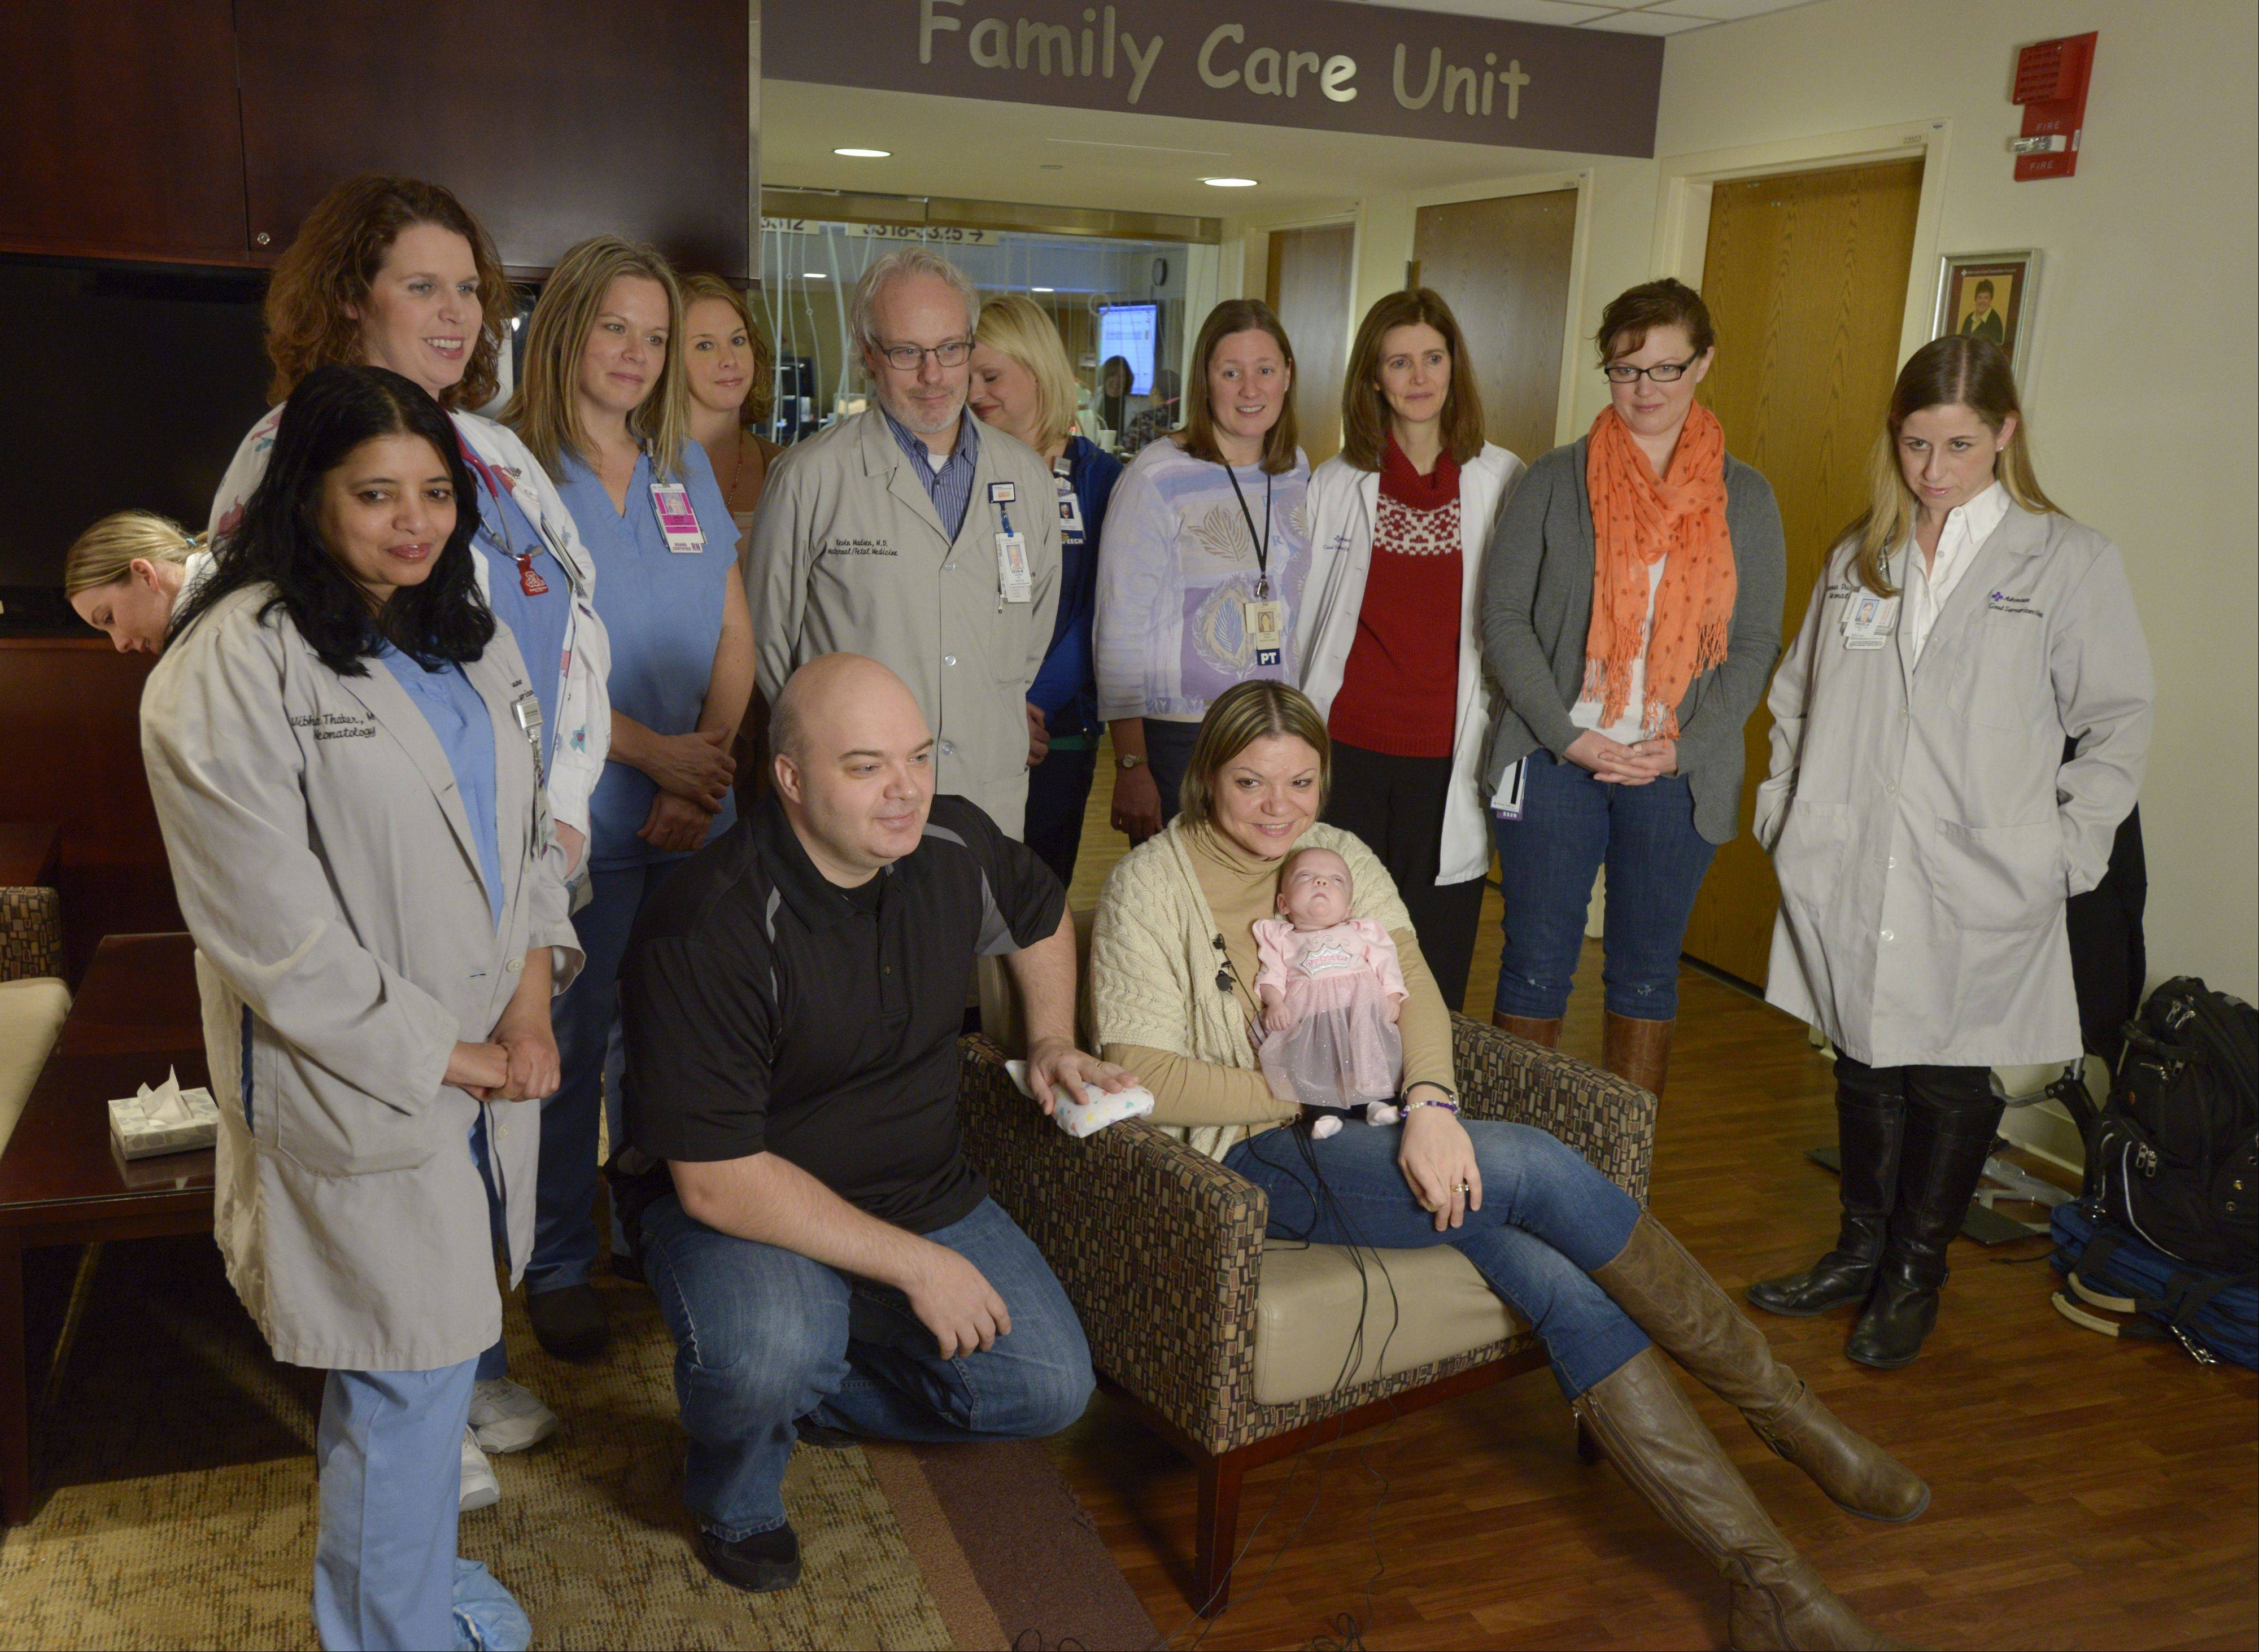 Mark and Ren� Pacyna of Schaumburg prepare to bring their daughter, Meghan, home for the first time Tuesday after a five-month stay at Advocate Good Samaritan Hospital in Downers Grove. Meghan was born 17 weeks premature, weighing a mere 15 ounces and measuring only 8 inches long.